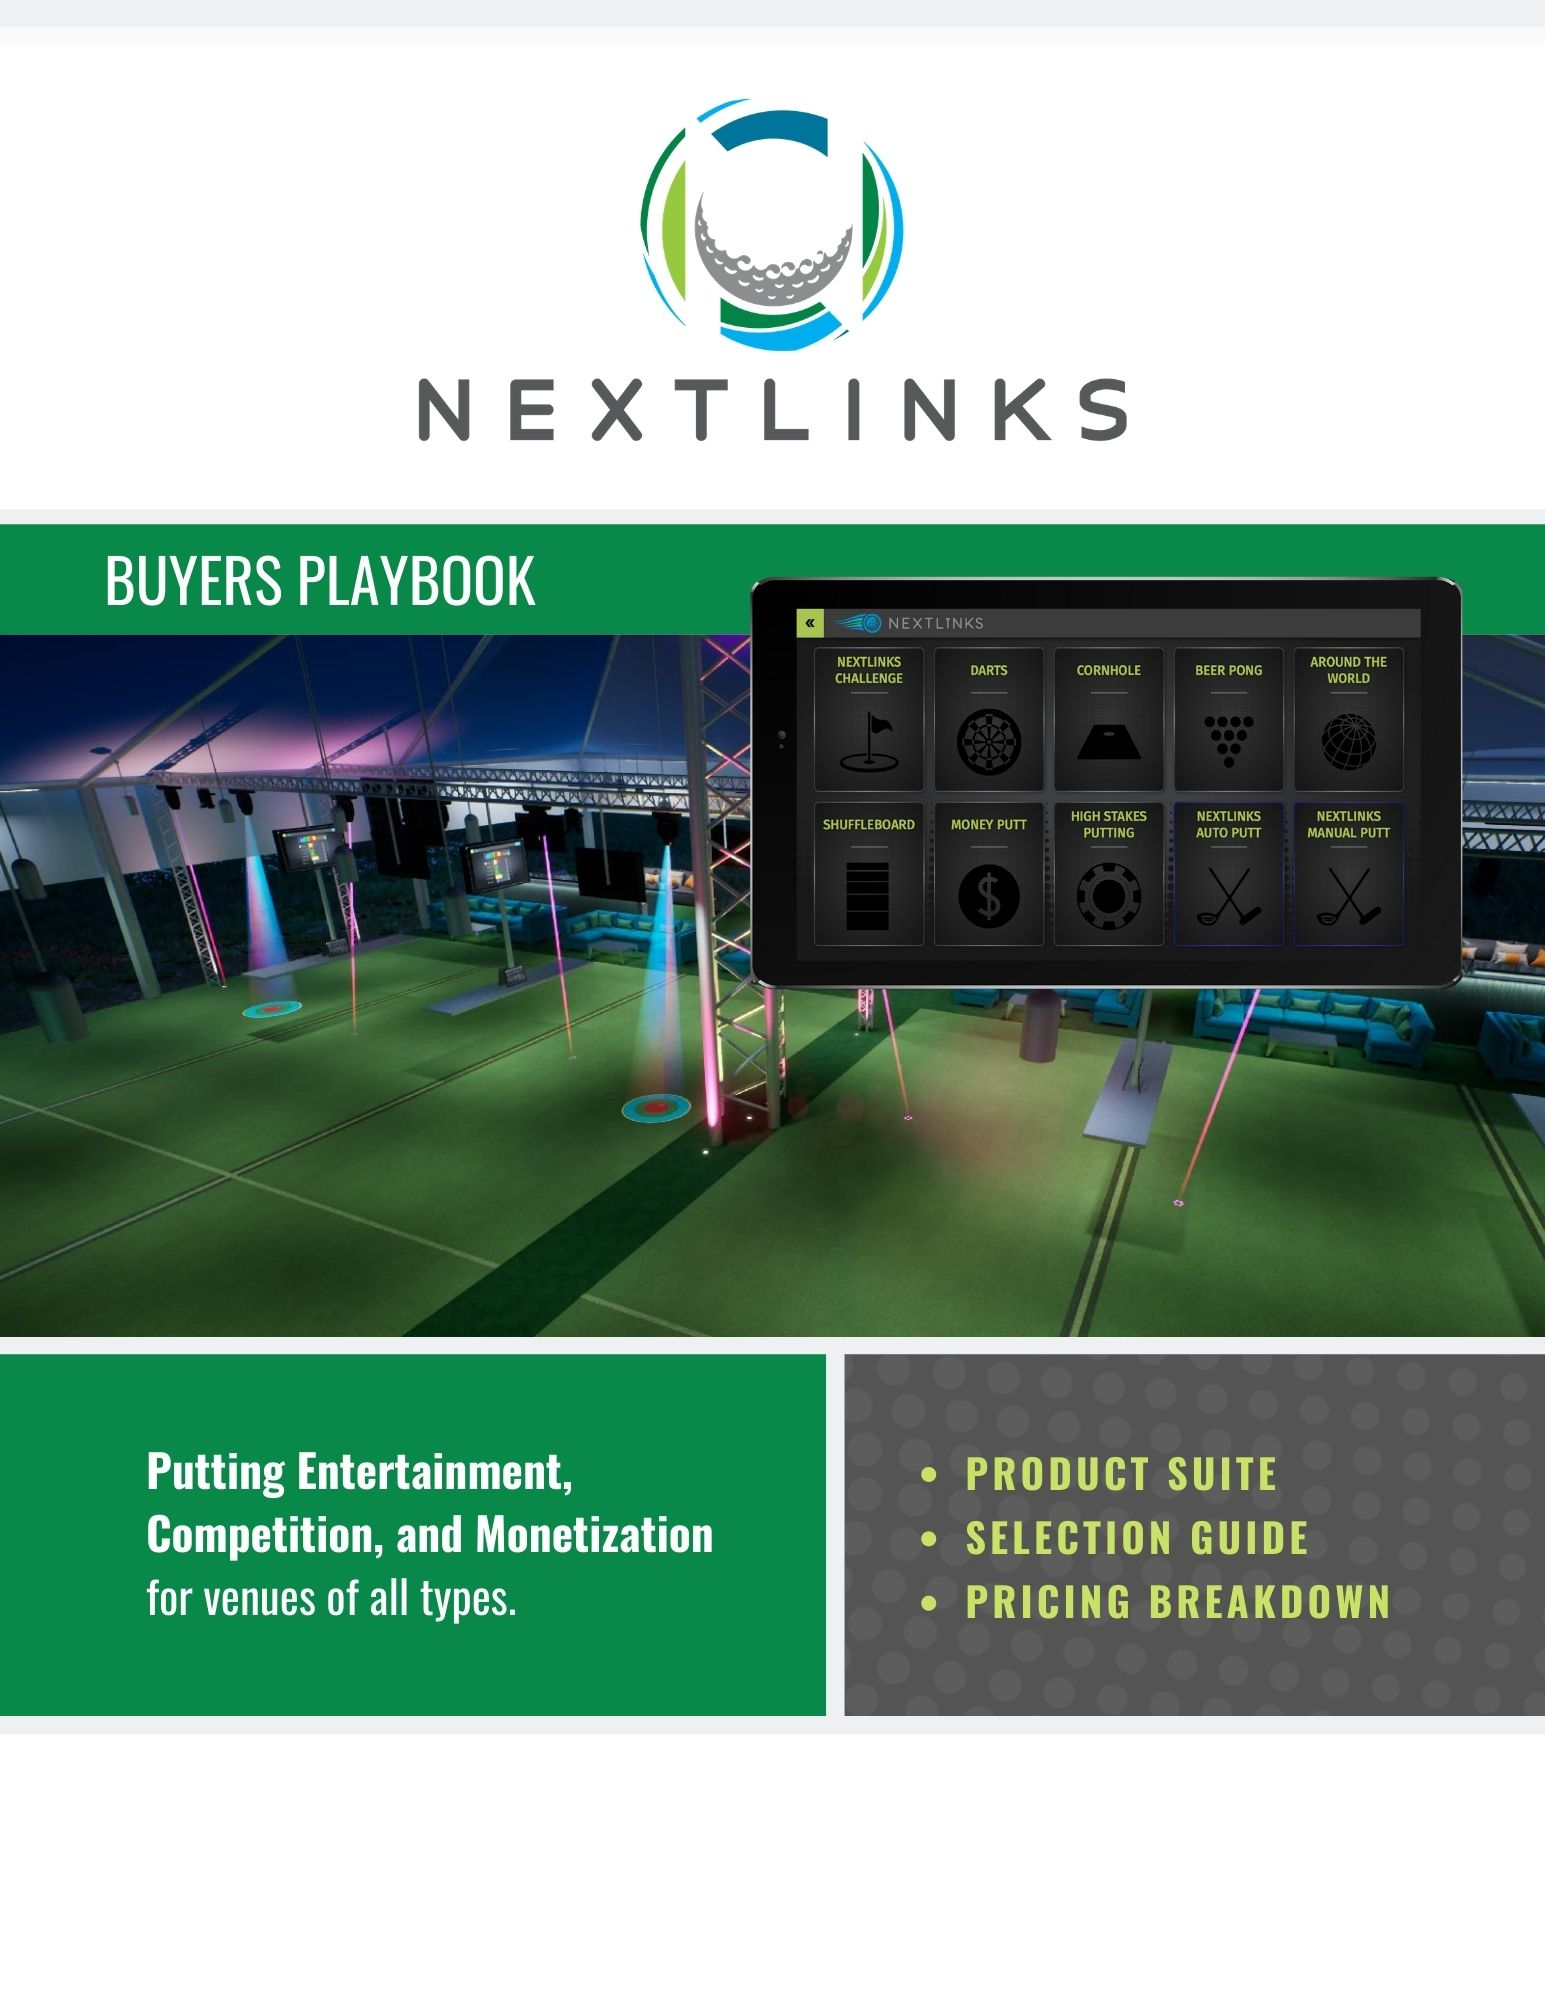 NextLinks Buyers Playbook